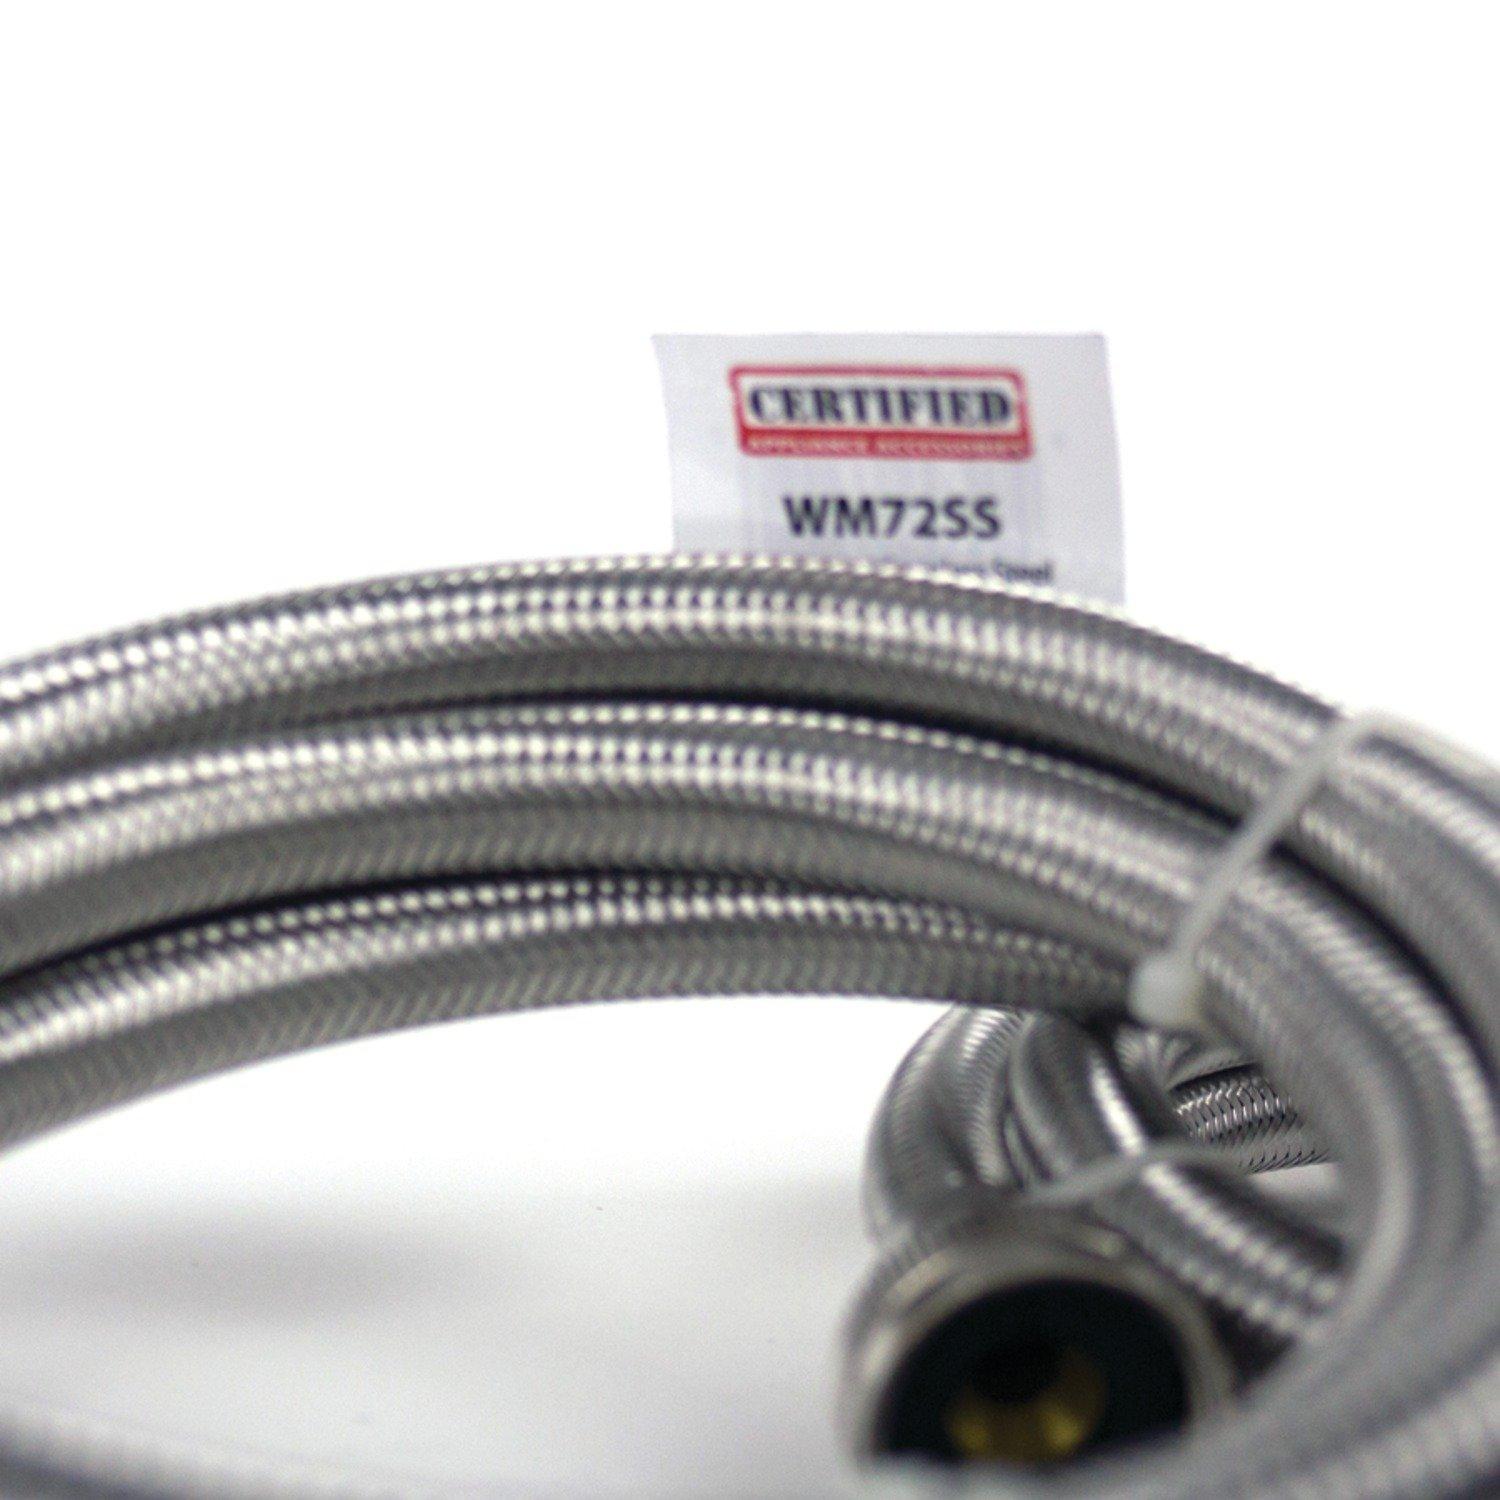 Certified Appliance Accessories Braided Stainless Steel Washing Machine Hoses, 6ft by Certified Appliance Accessories (Image #8)